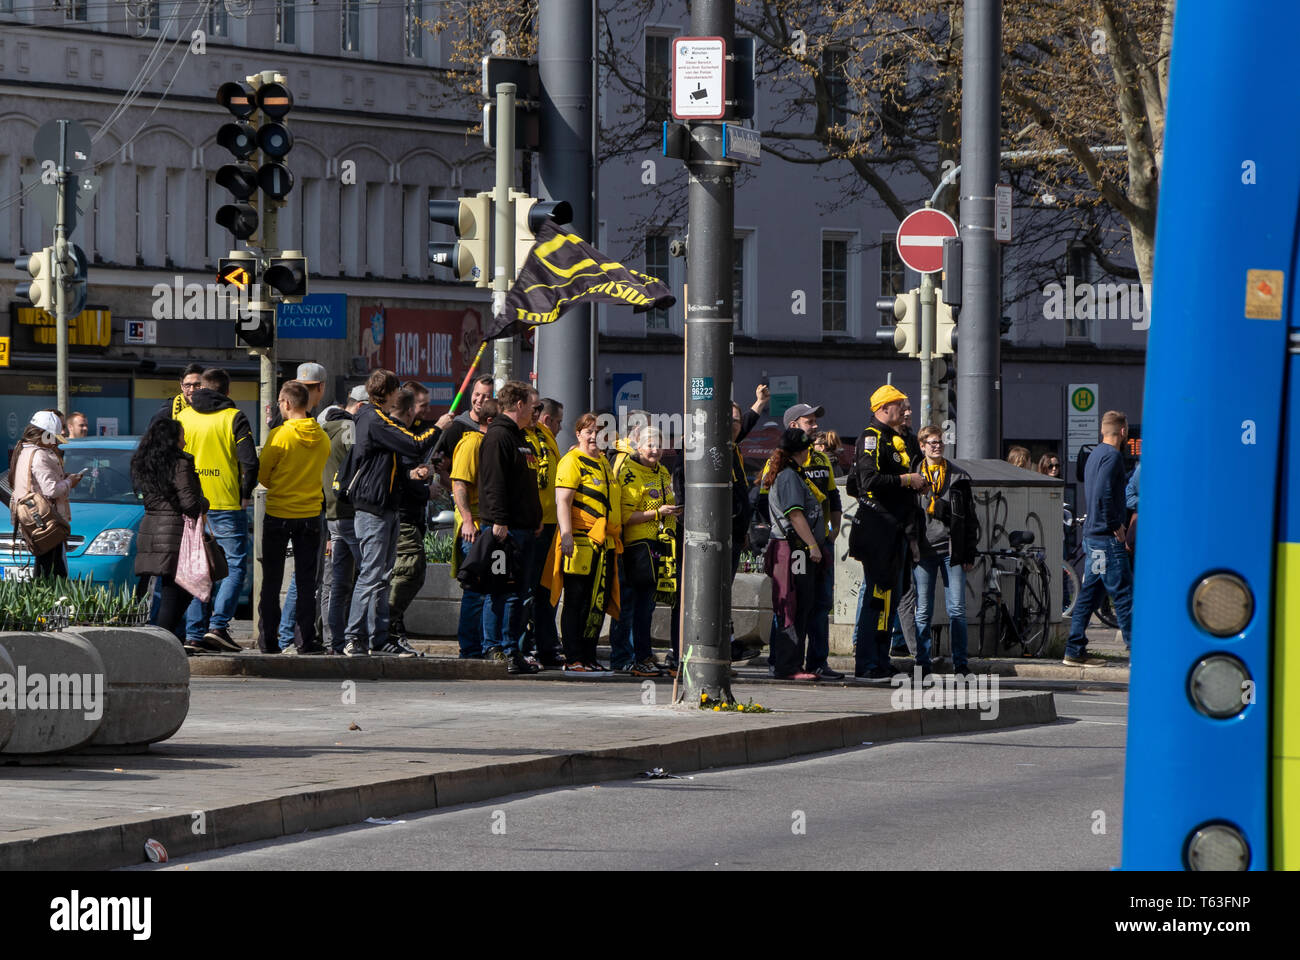 CENTRAL STATIONS, MUNICH, APRIL 6, 2019: bvb fans on the way to the soccer game fc bayern munich vs bvb - Stock Image